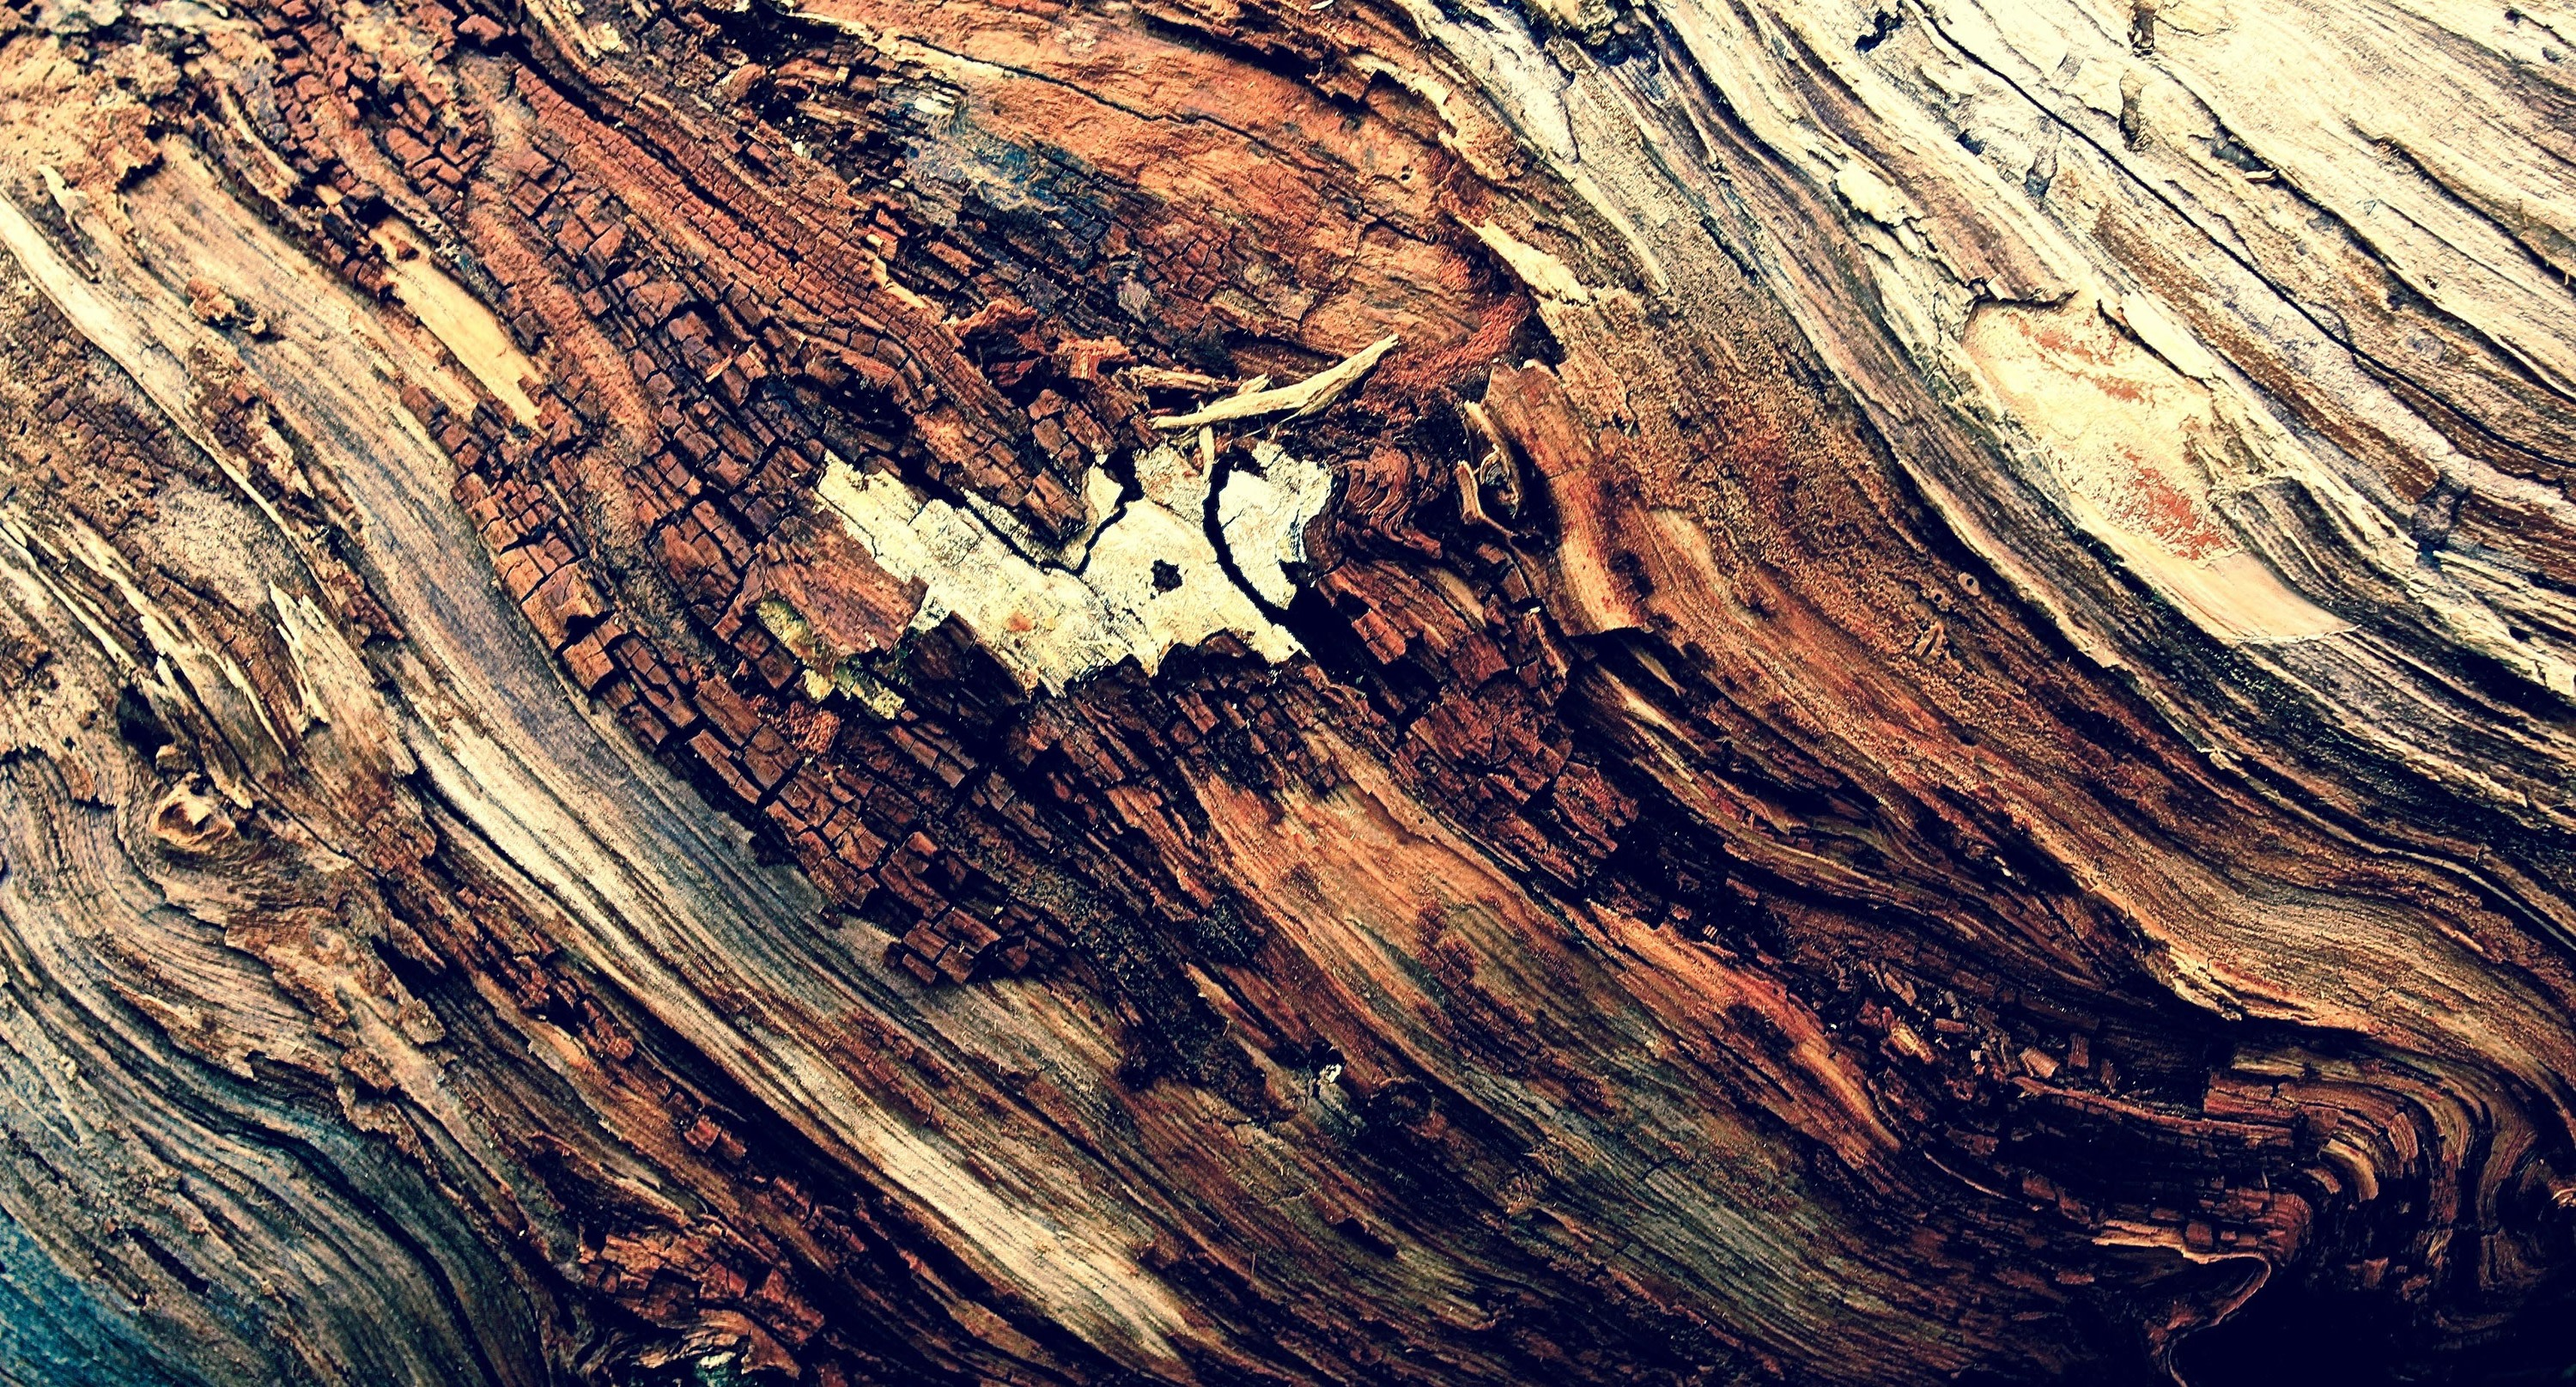 <div class='title'>           Stumped         </div>                 <div class='description'>           Details on texture and color of a stump along the Bryce Canyon Rim Trail. May, 2015.         </div>